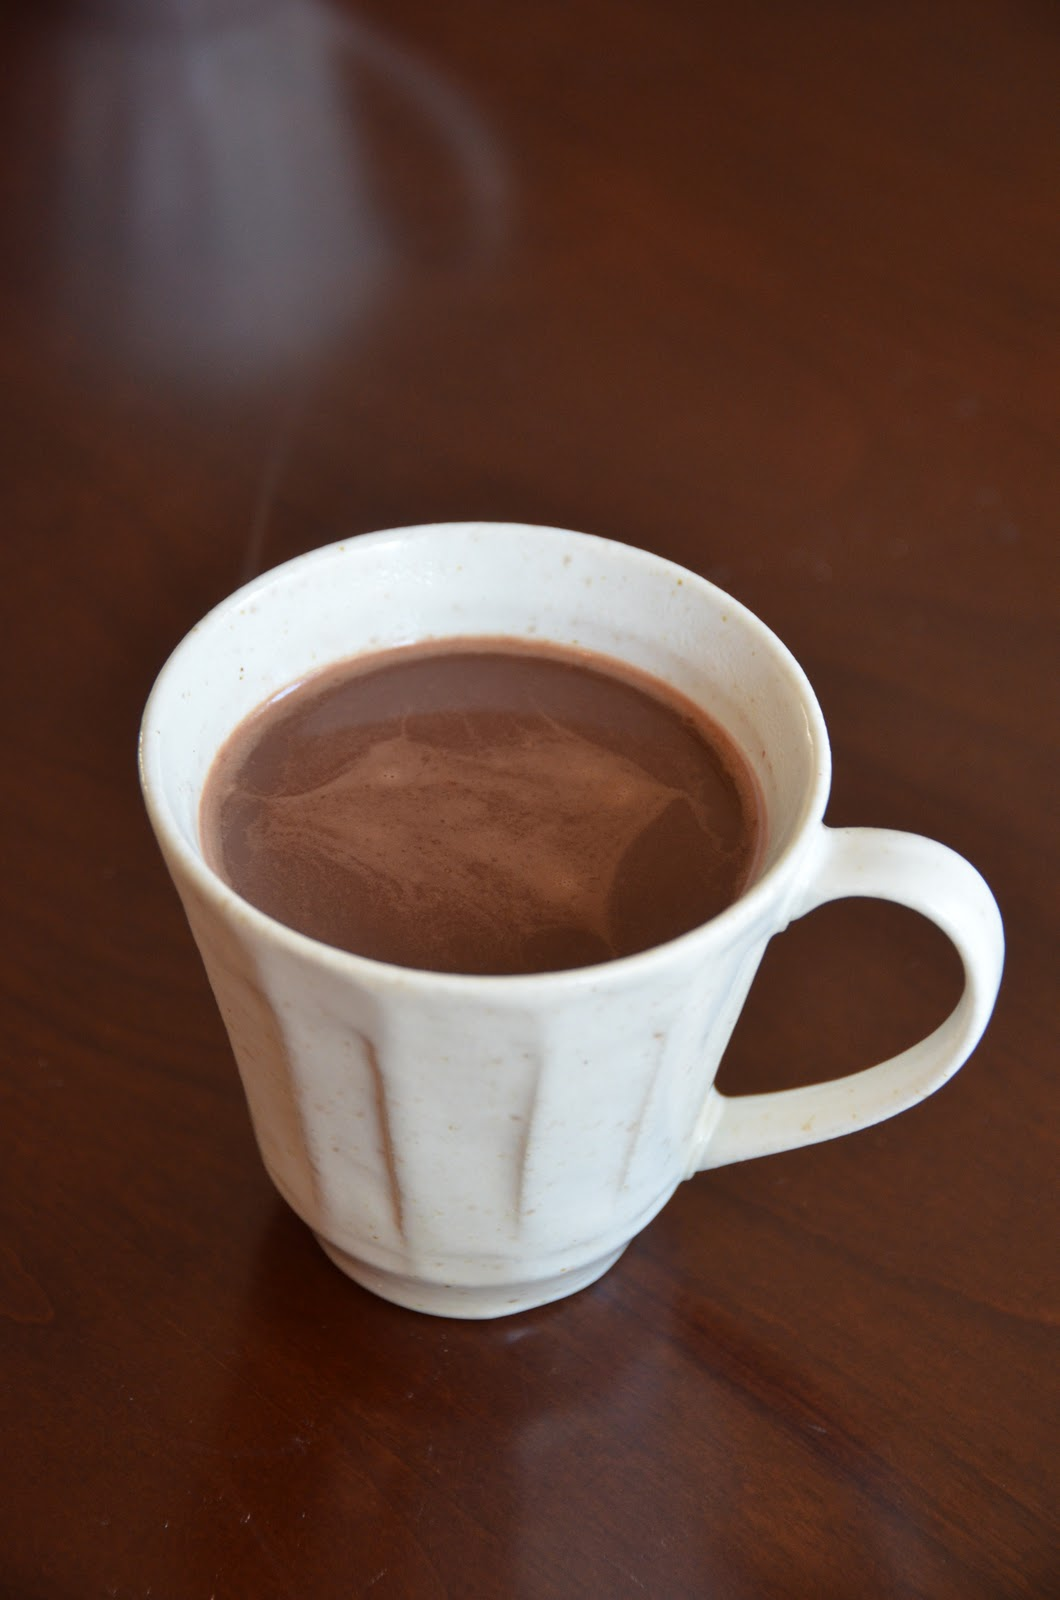 Playing with Flour: Hot chocolate taste test